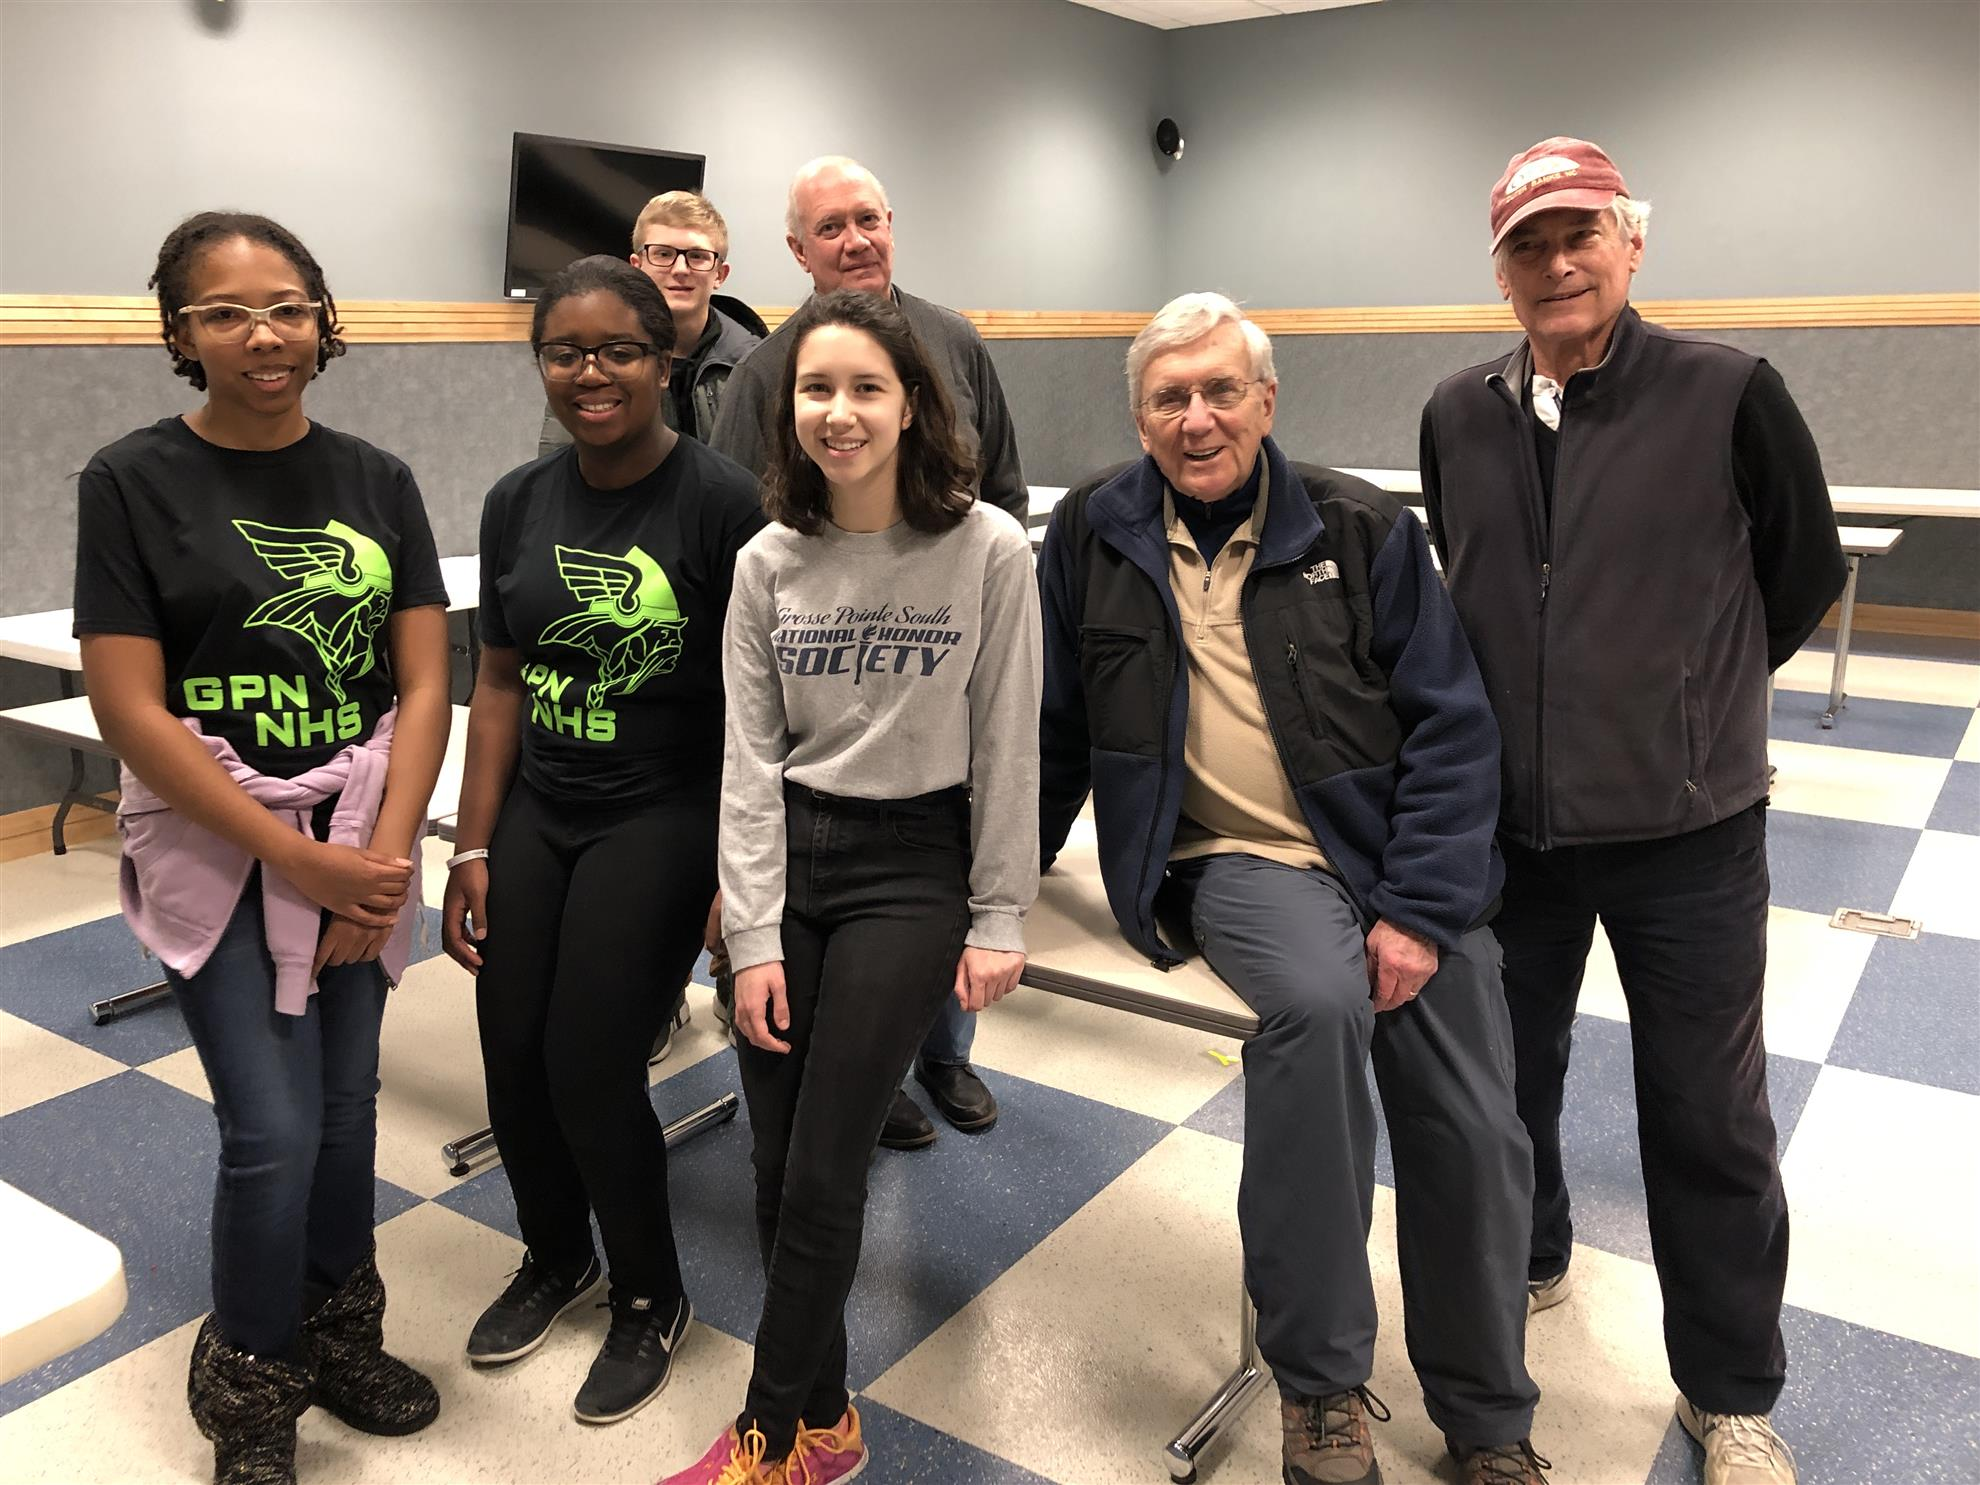 Stories | Rotary Club of Grosse Pointe